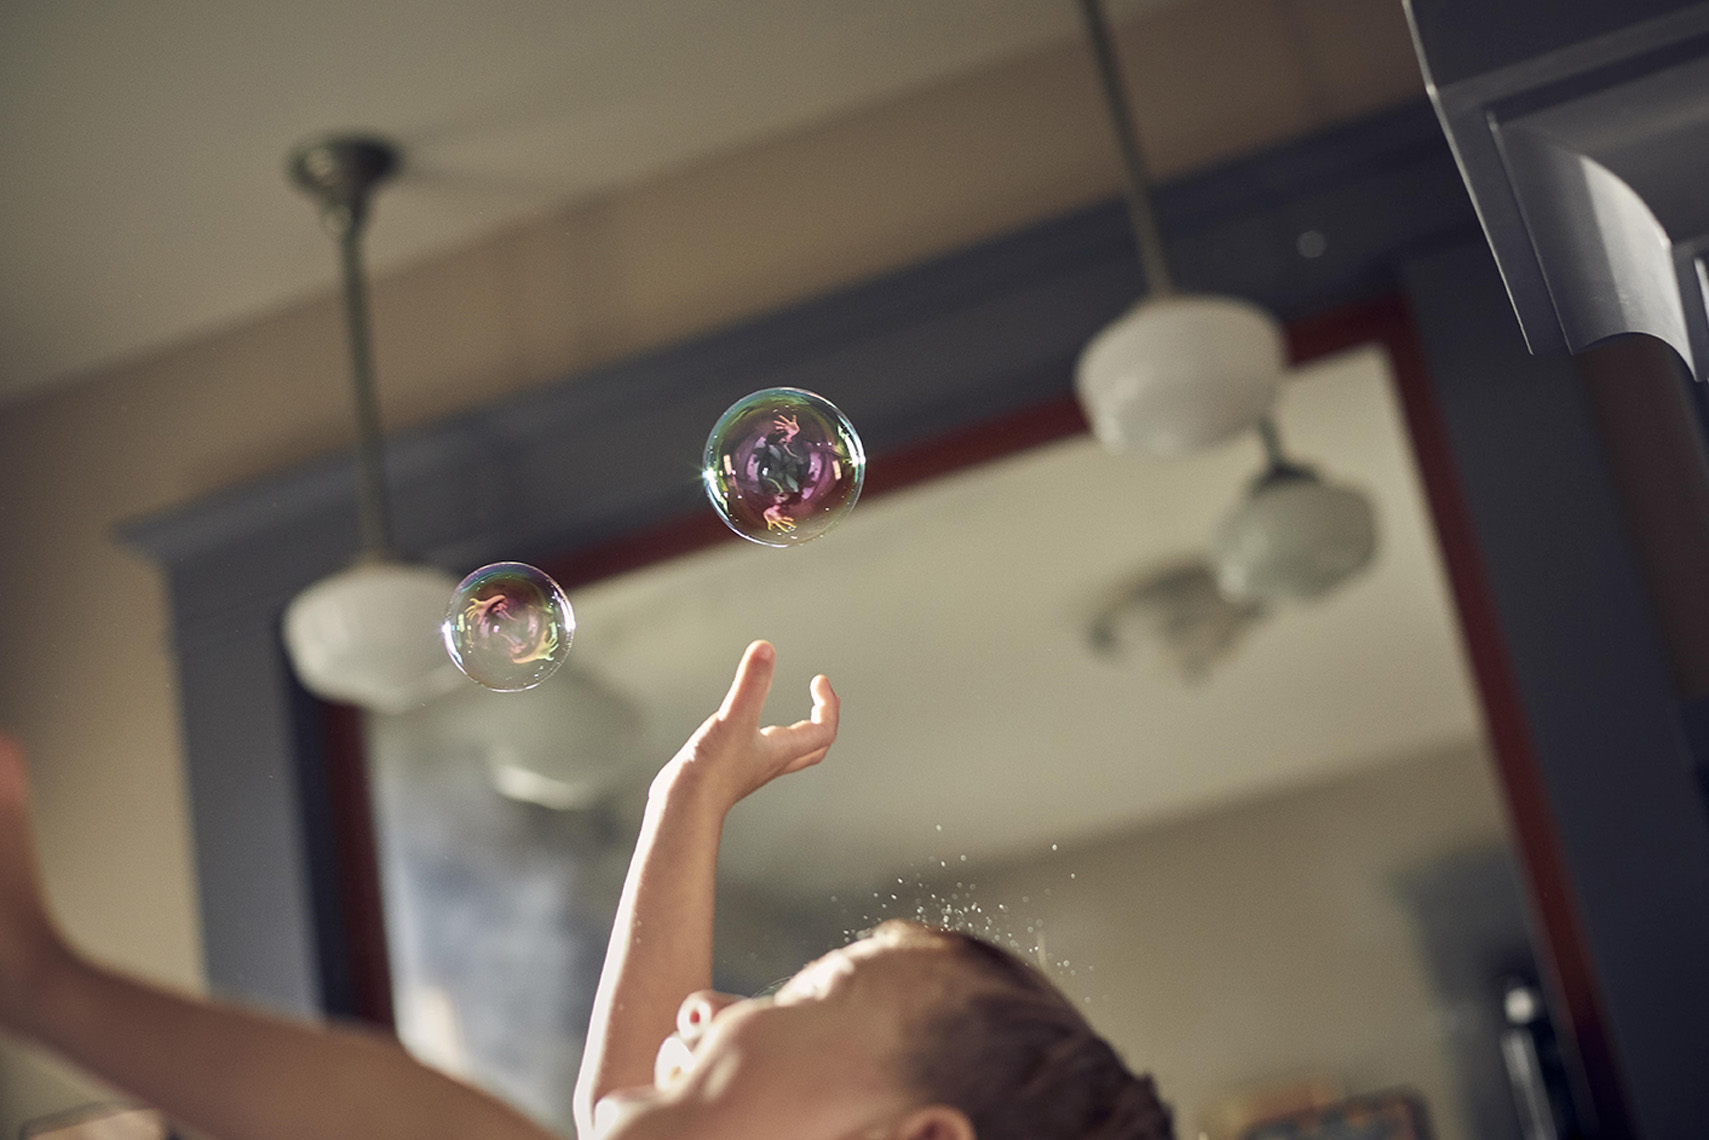 20191013-22_SHARONS-DREAM-SON-POPPING-BUBBLES_2794